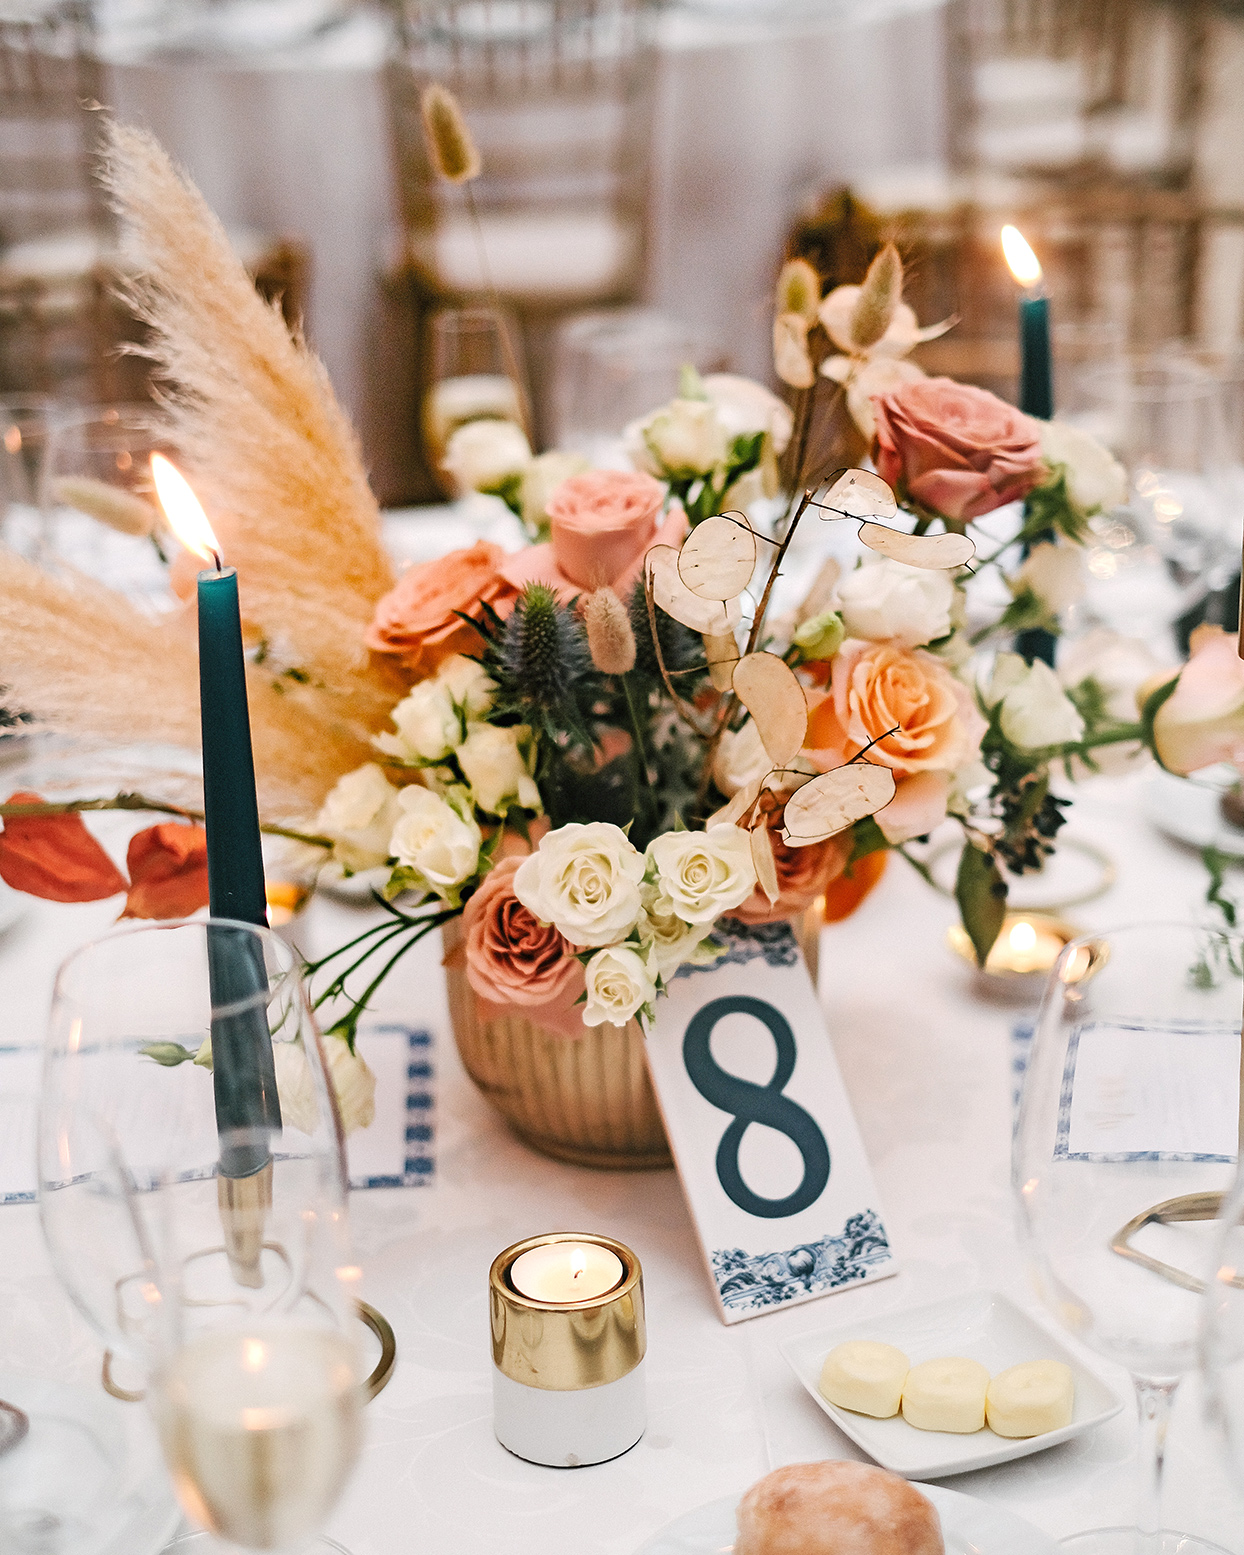 emily scott wedding centerpiece with seating number